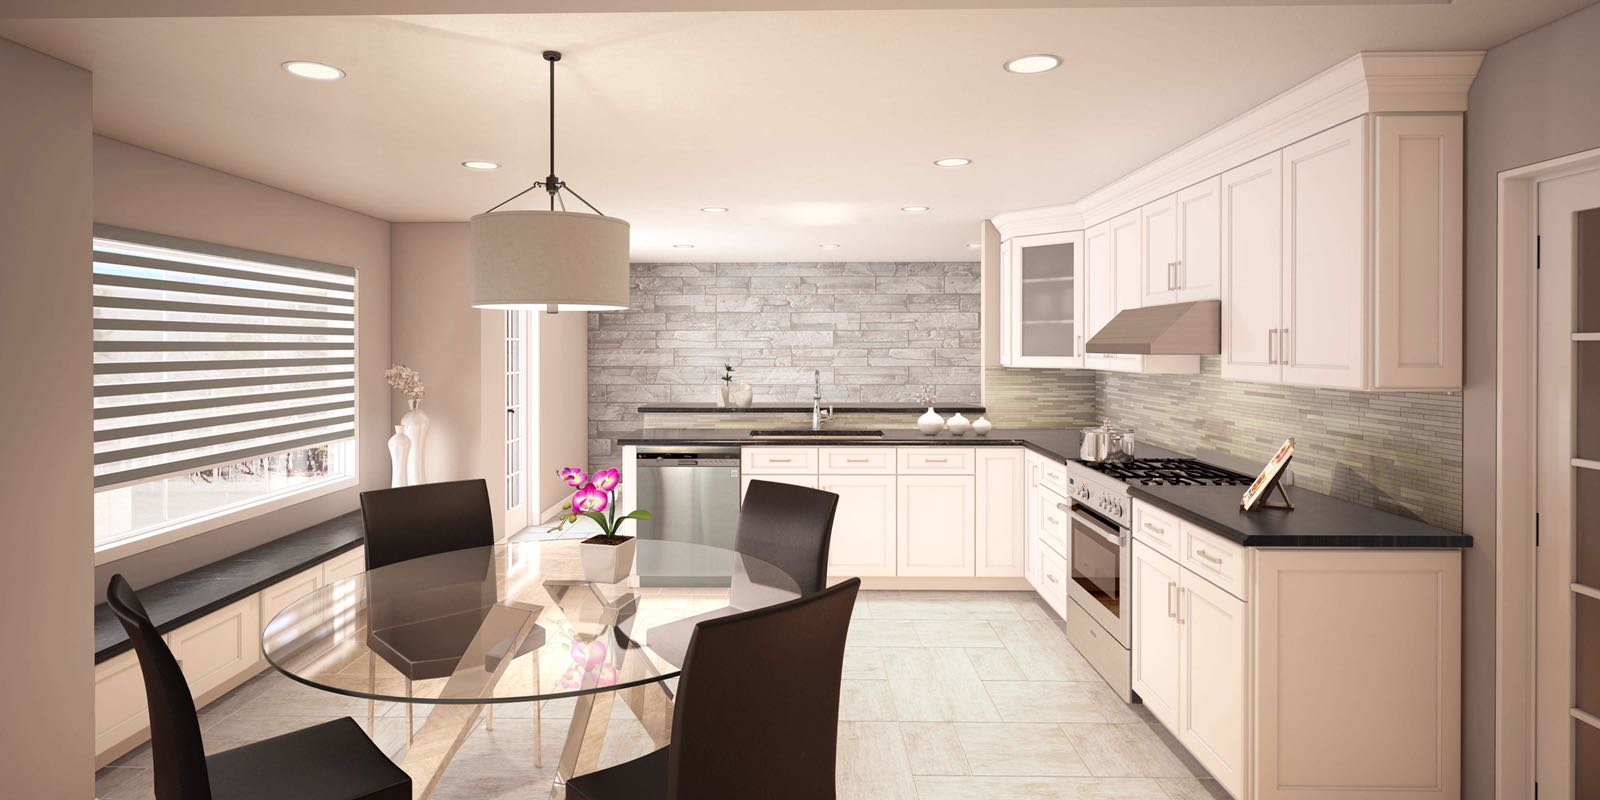 European Kitchen Cabinets Brooklyn Ny Kitchen Remodeling And Interior Renovation Brooklyn Ny